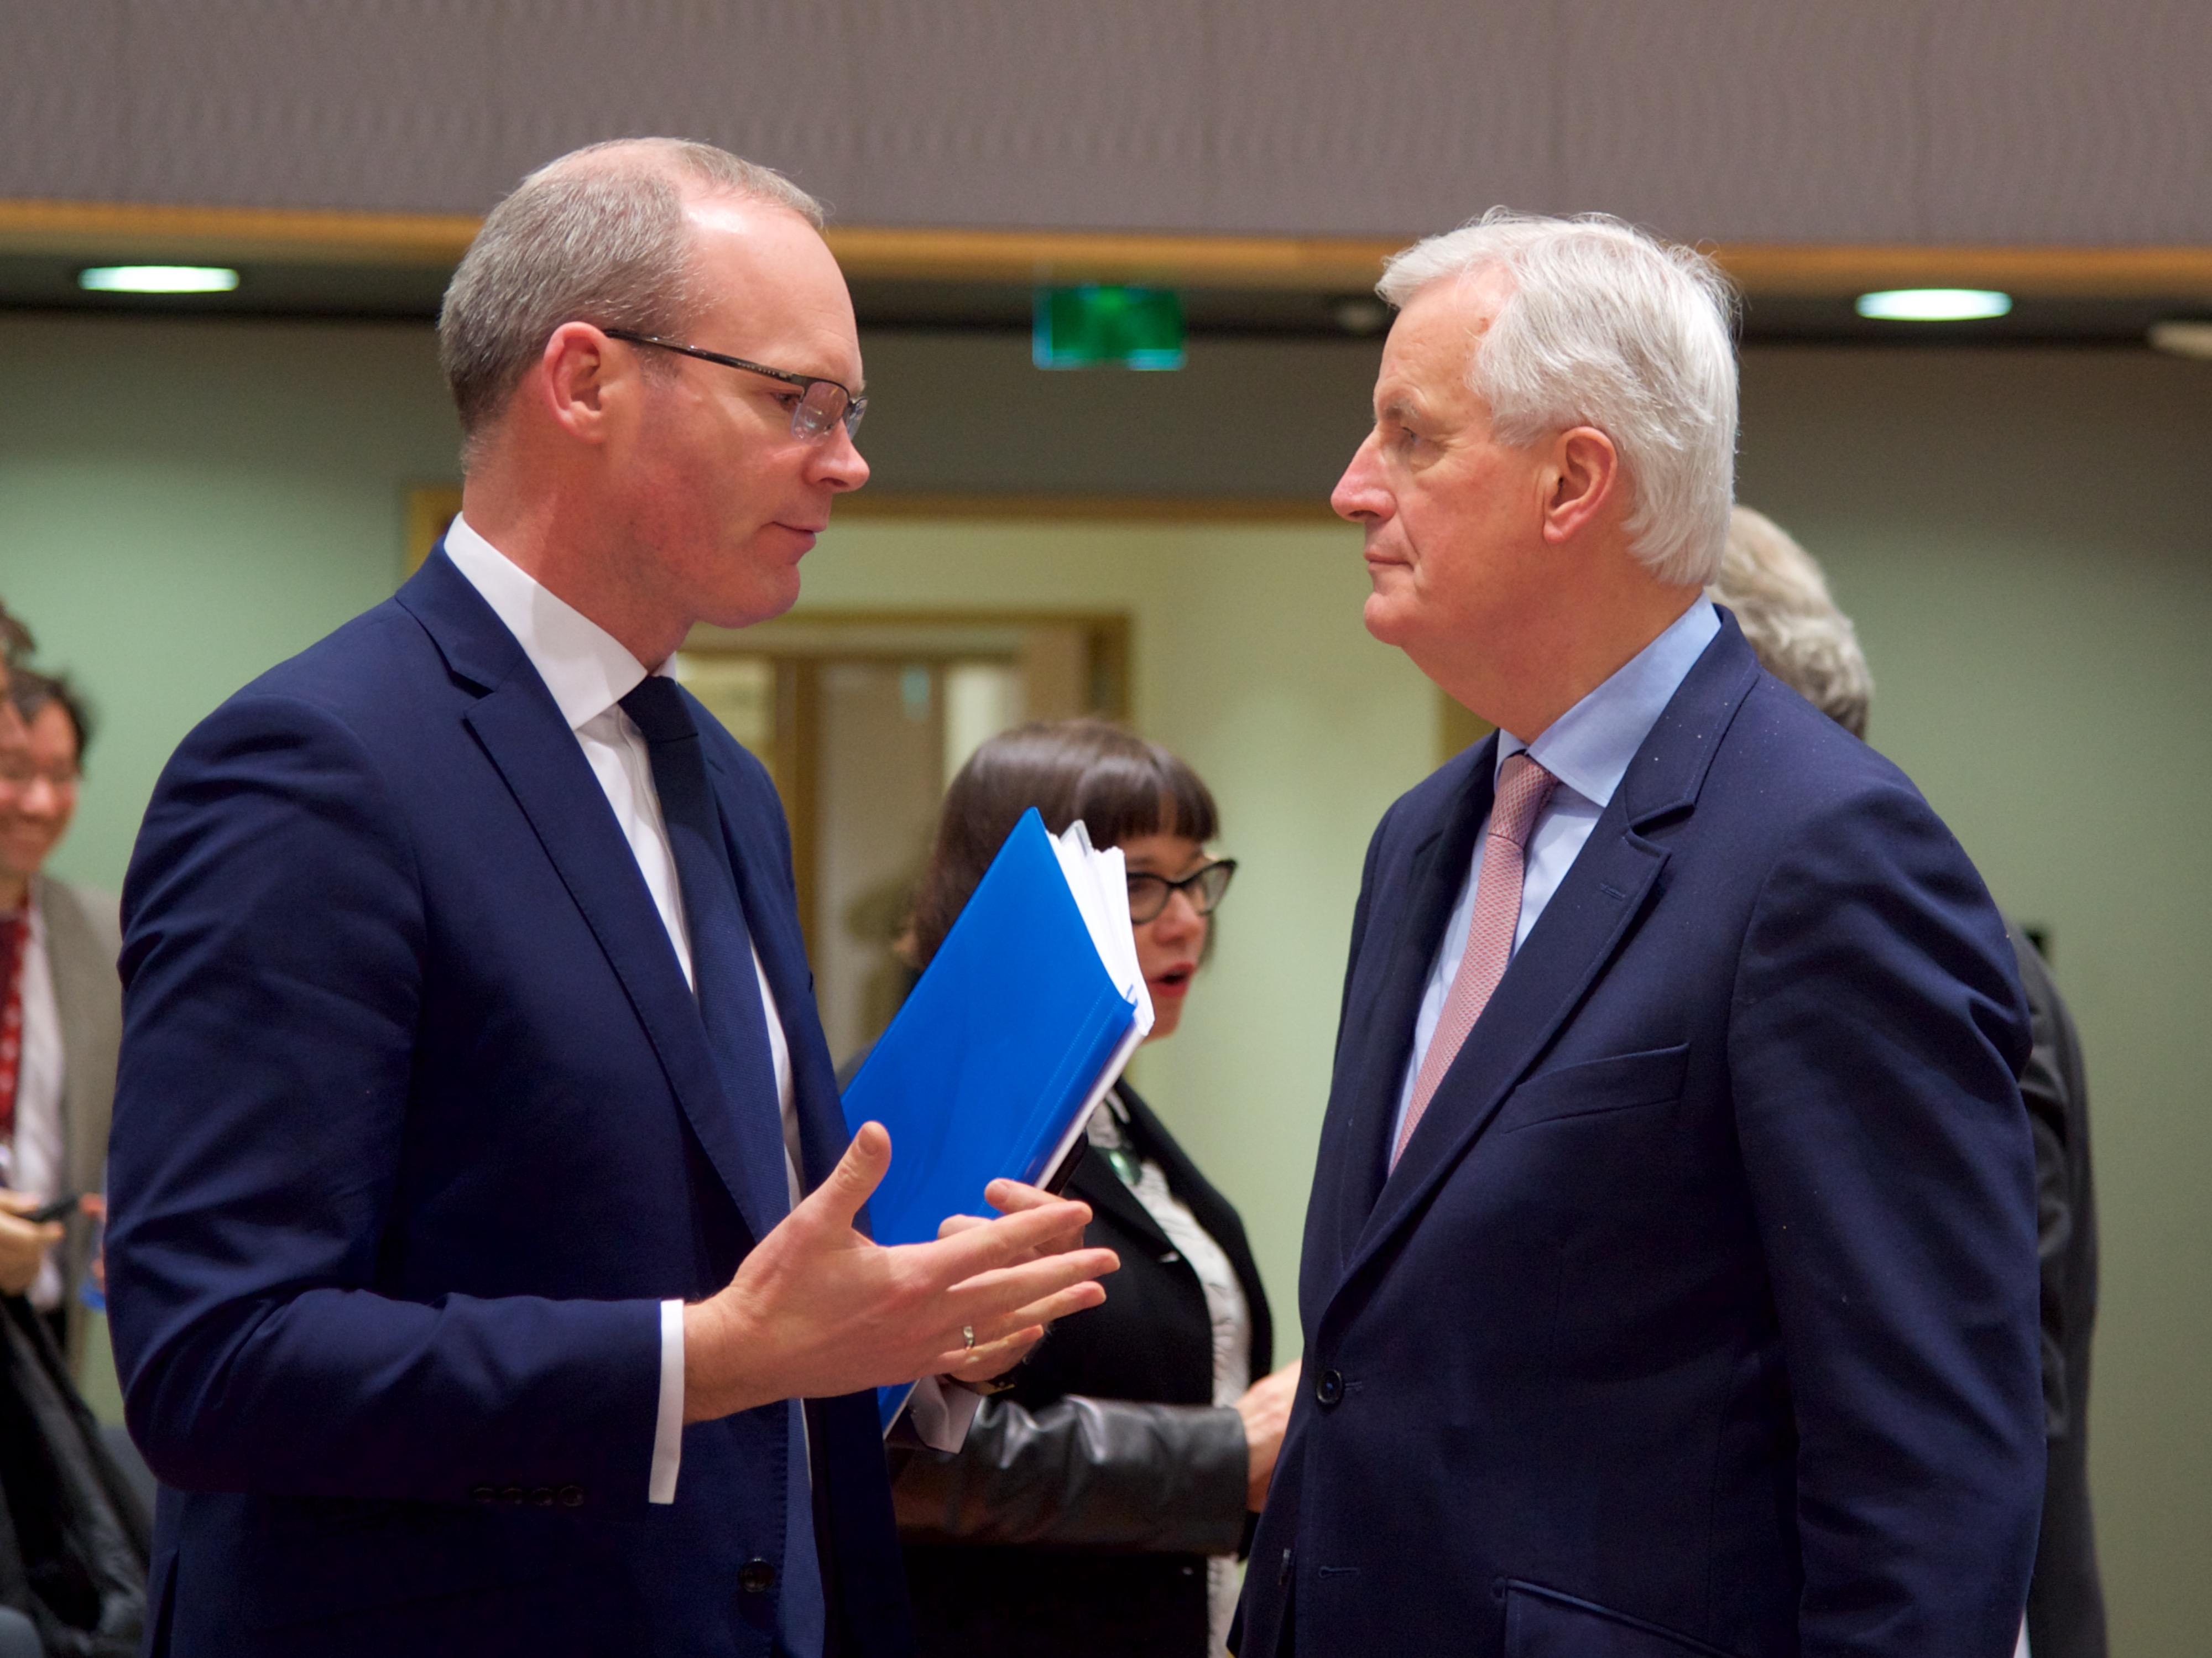 Barnier: open-ended Brexit transition 'not possible'